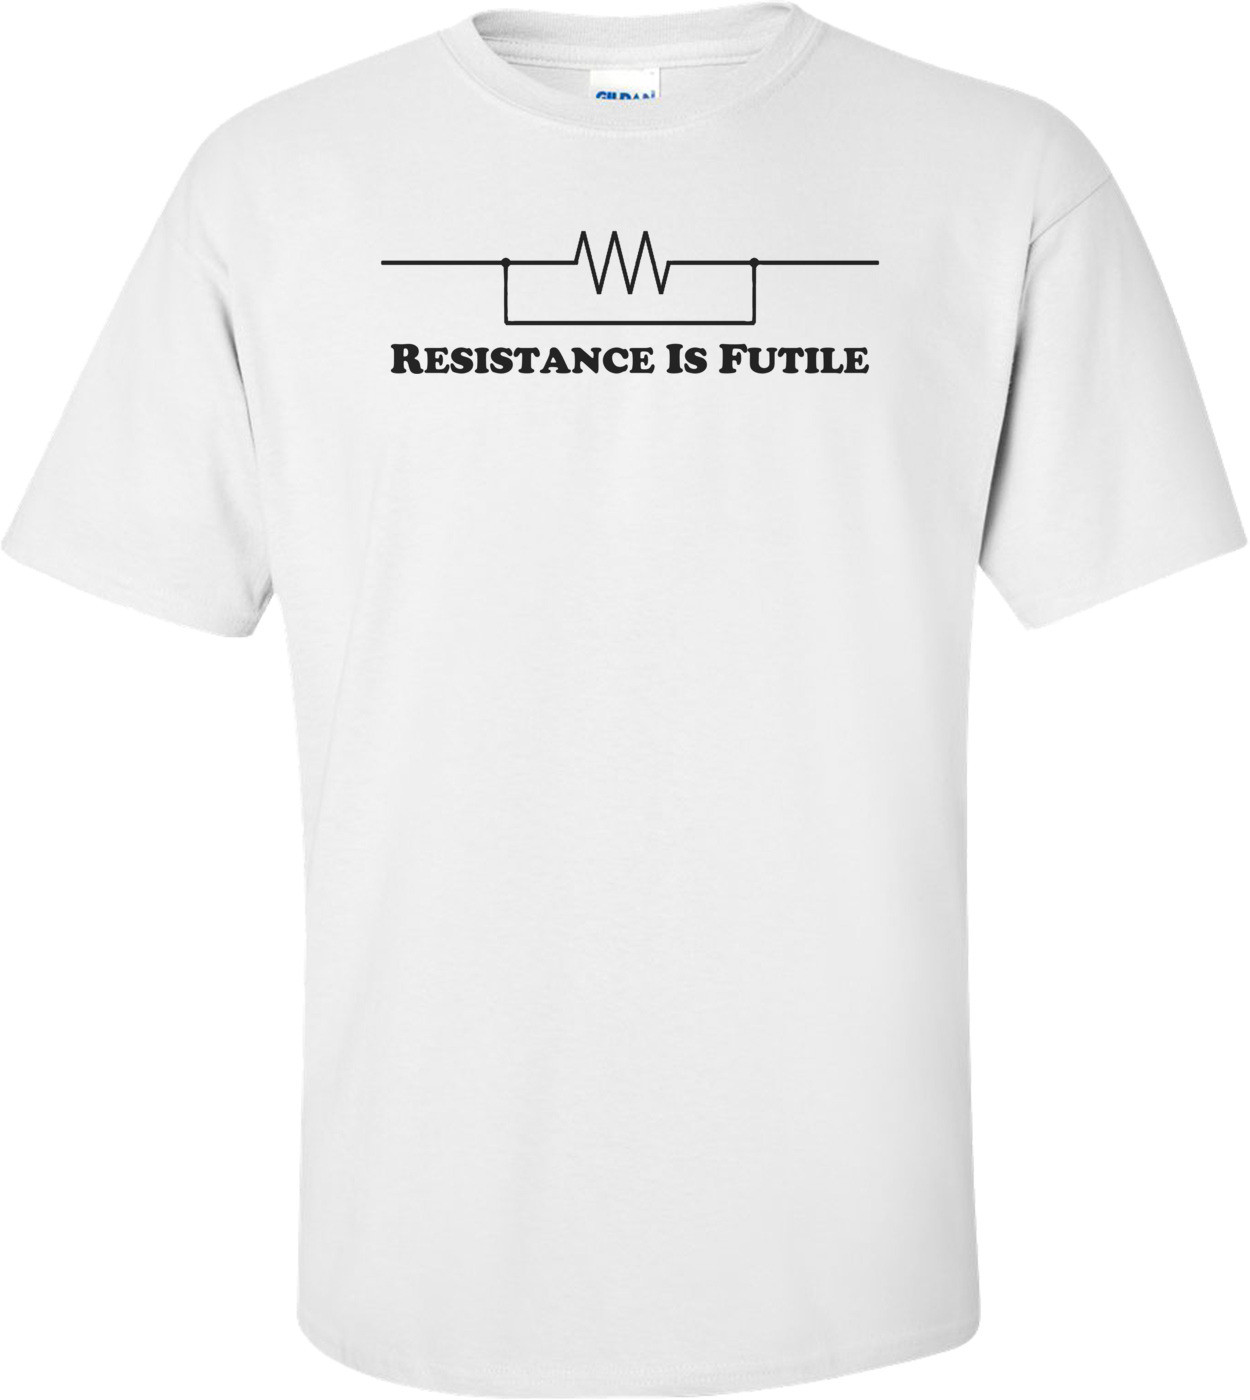 Resistance Is Futile Shirt